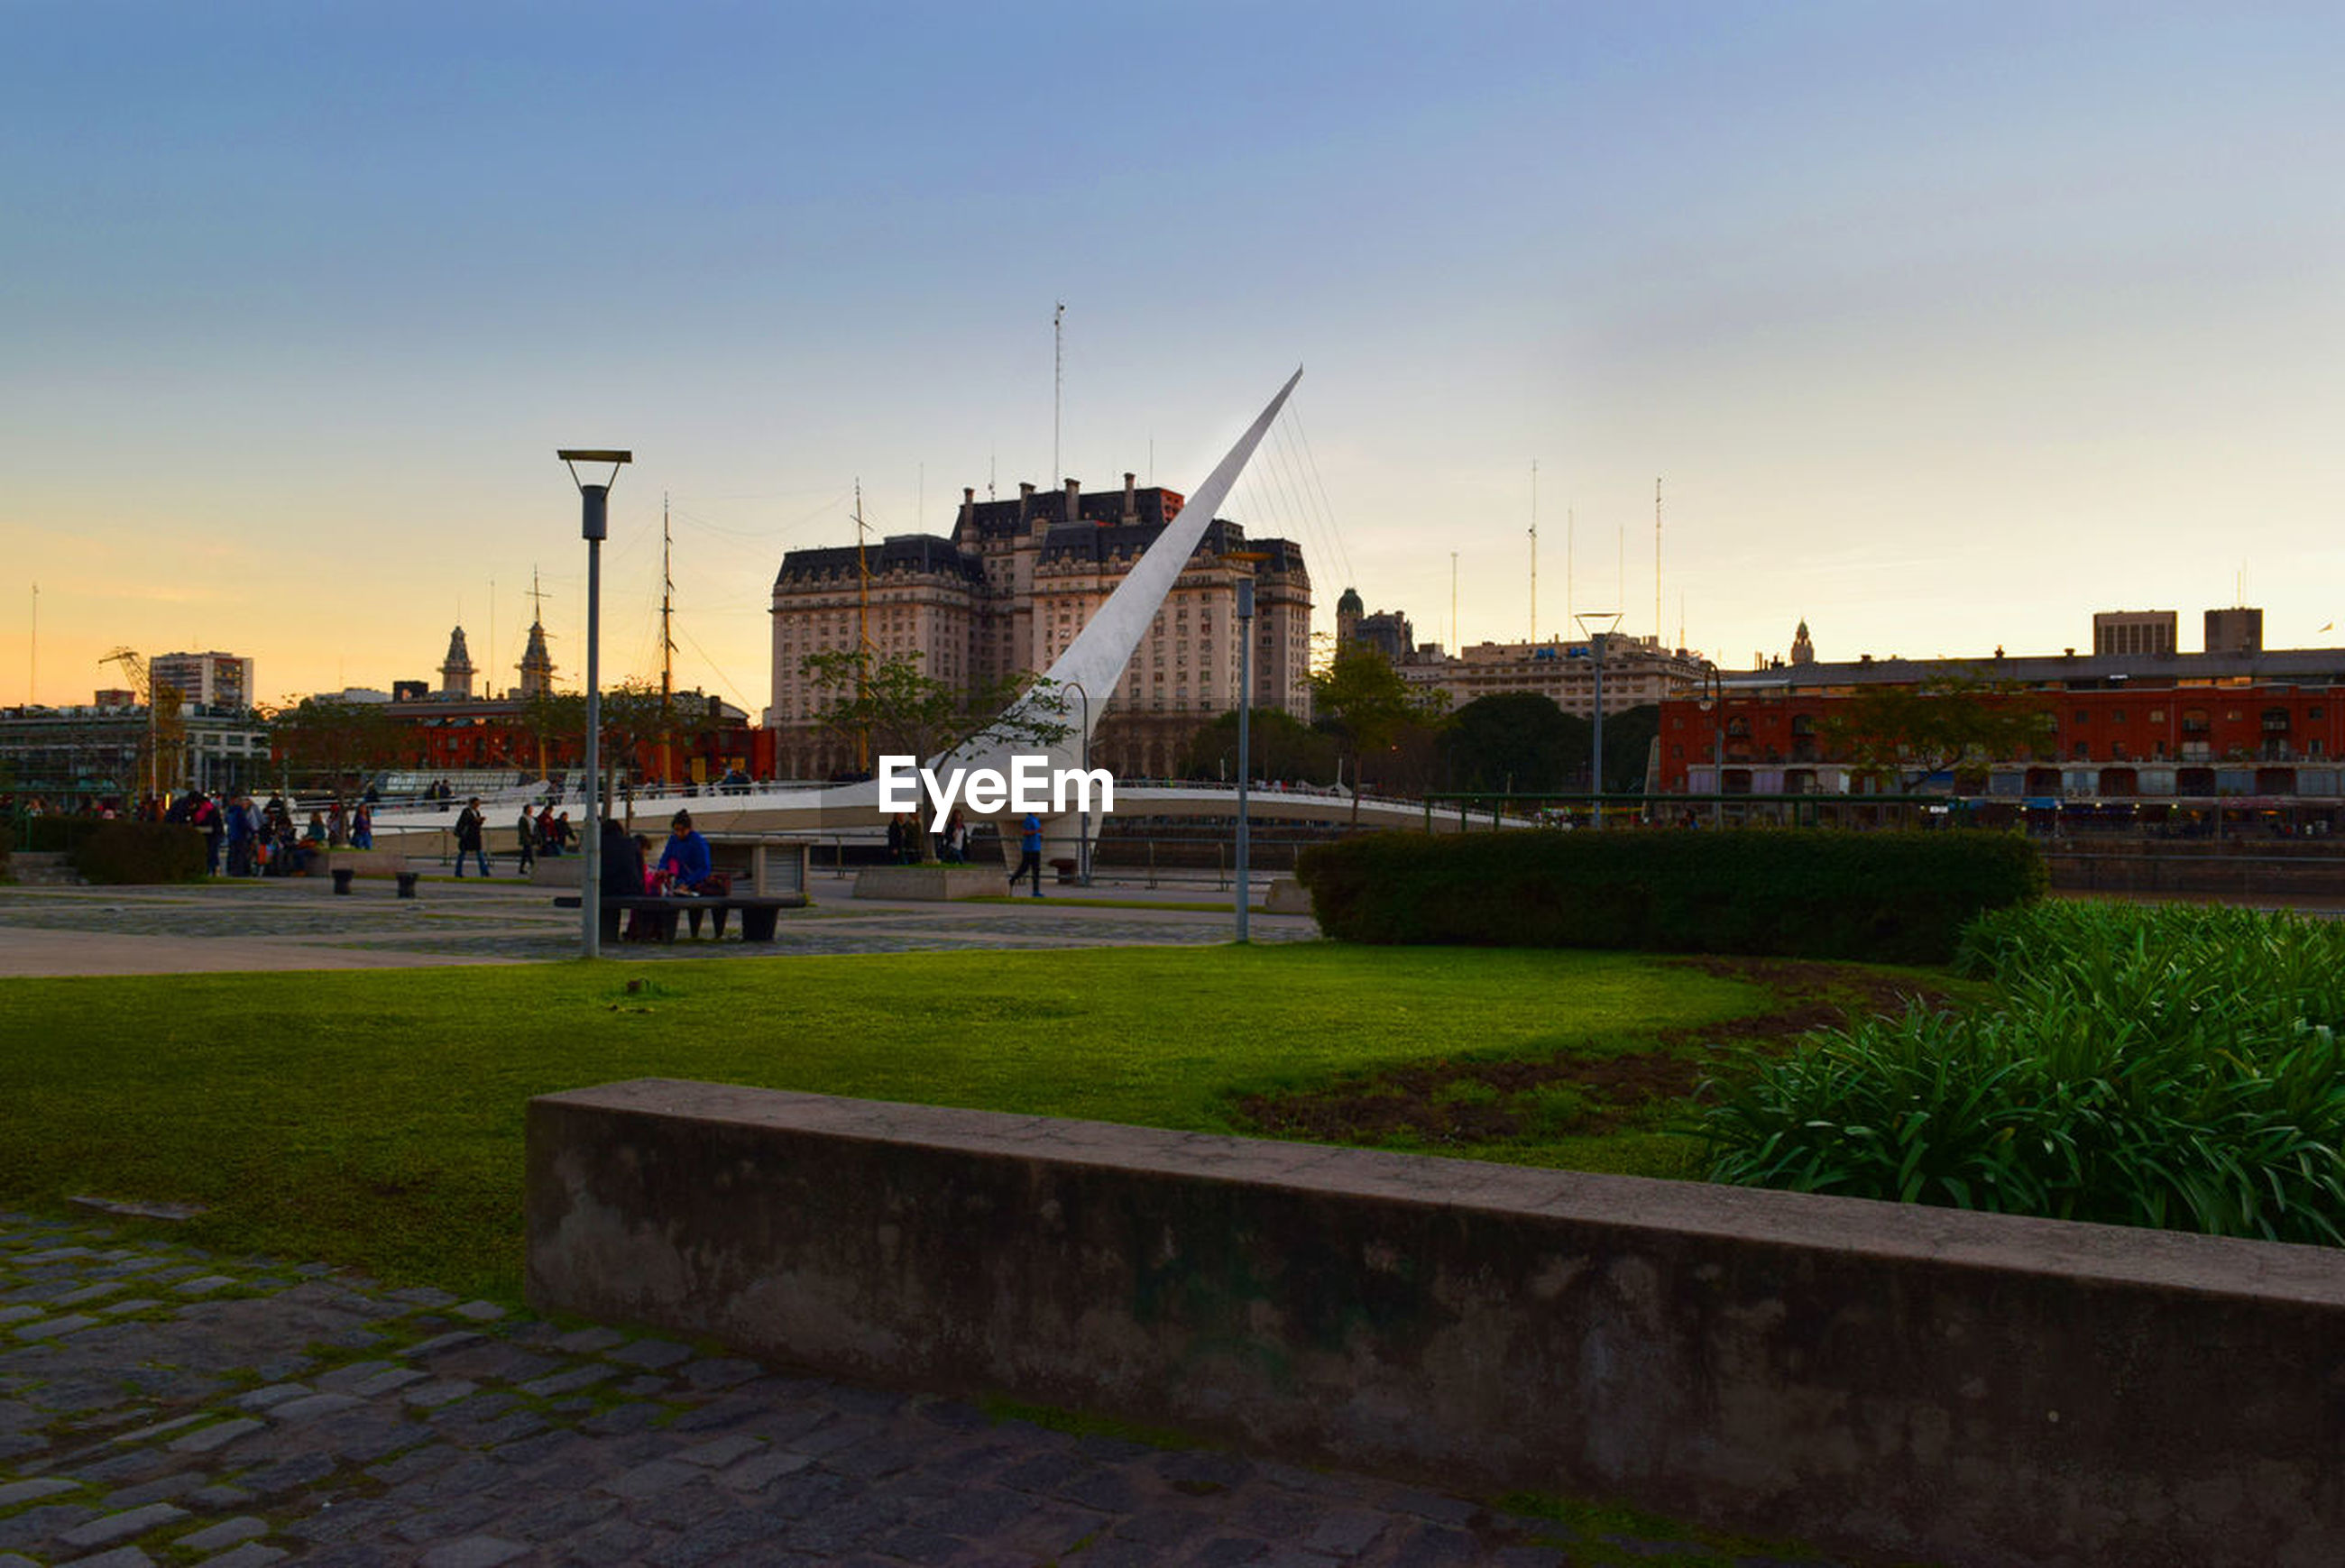 architecture, built structure, building exterior, travel destinations, city, sky, outdoors, sunset, nature, cityscape, grass, day, clear sky, large group of people, real people, water, people